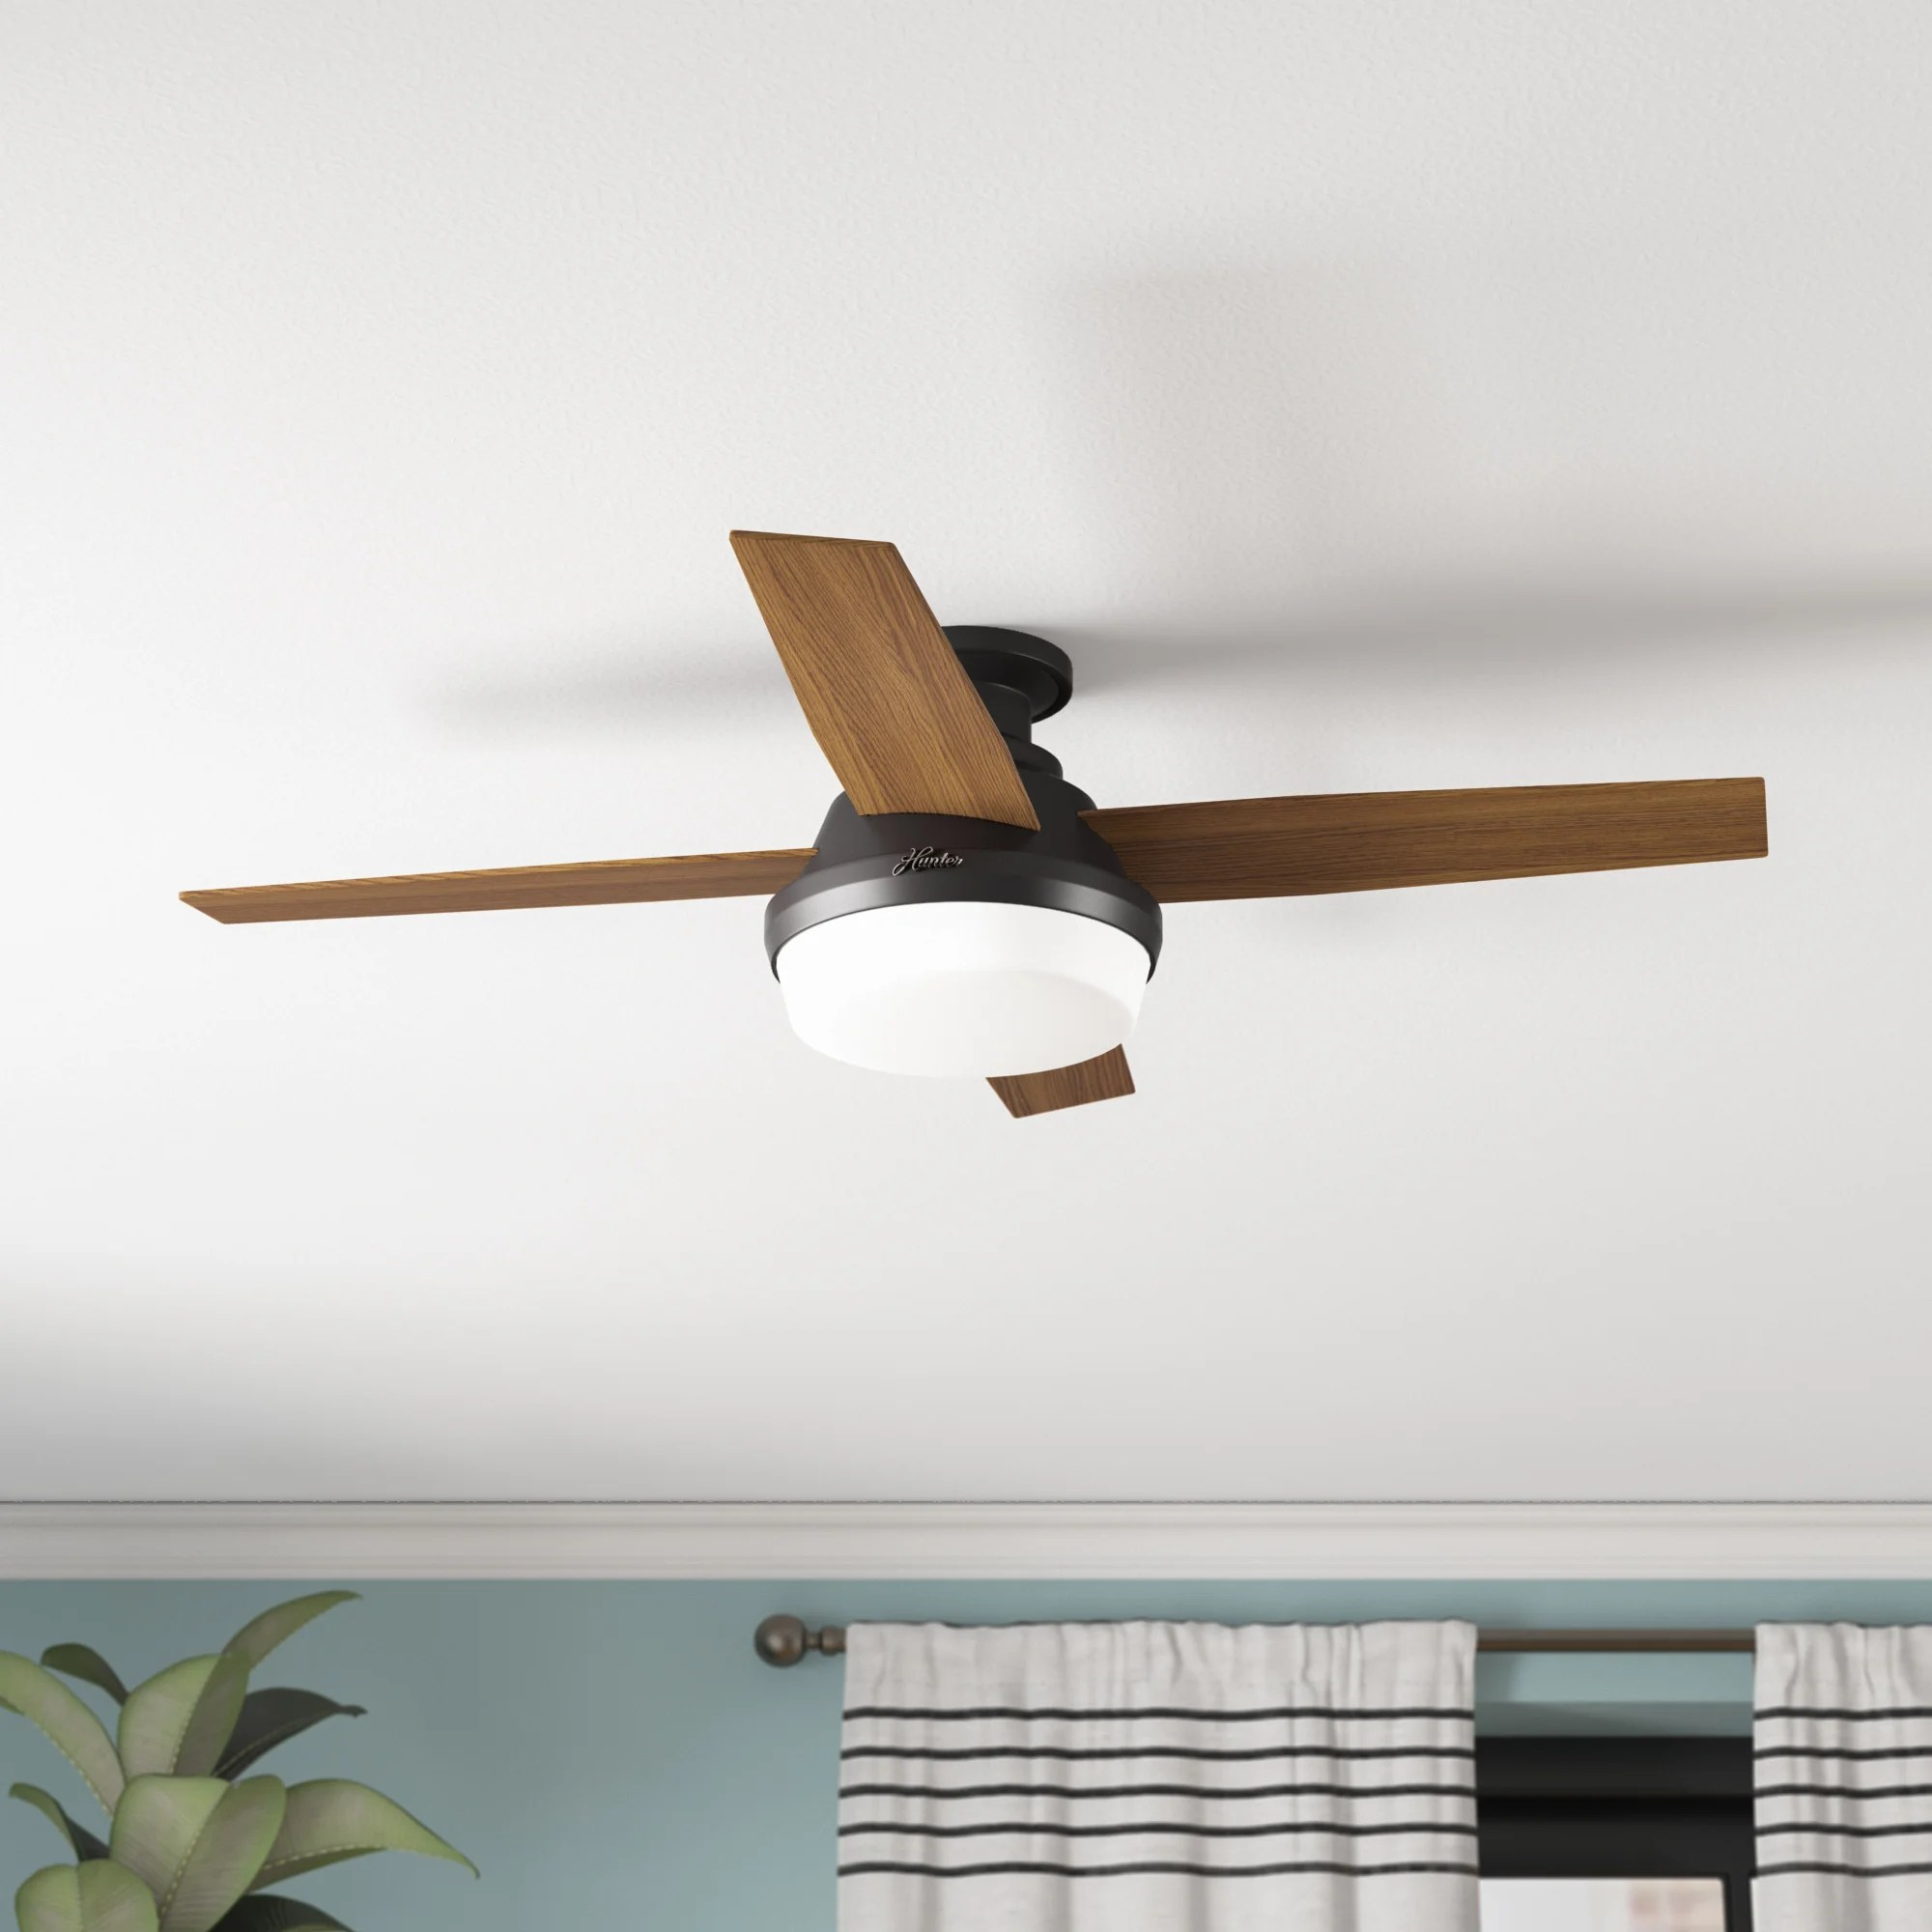 44 dempsey low profile 4 blade flush mount ceiling fan with remote control and light kit included